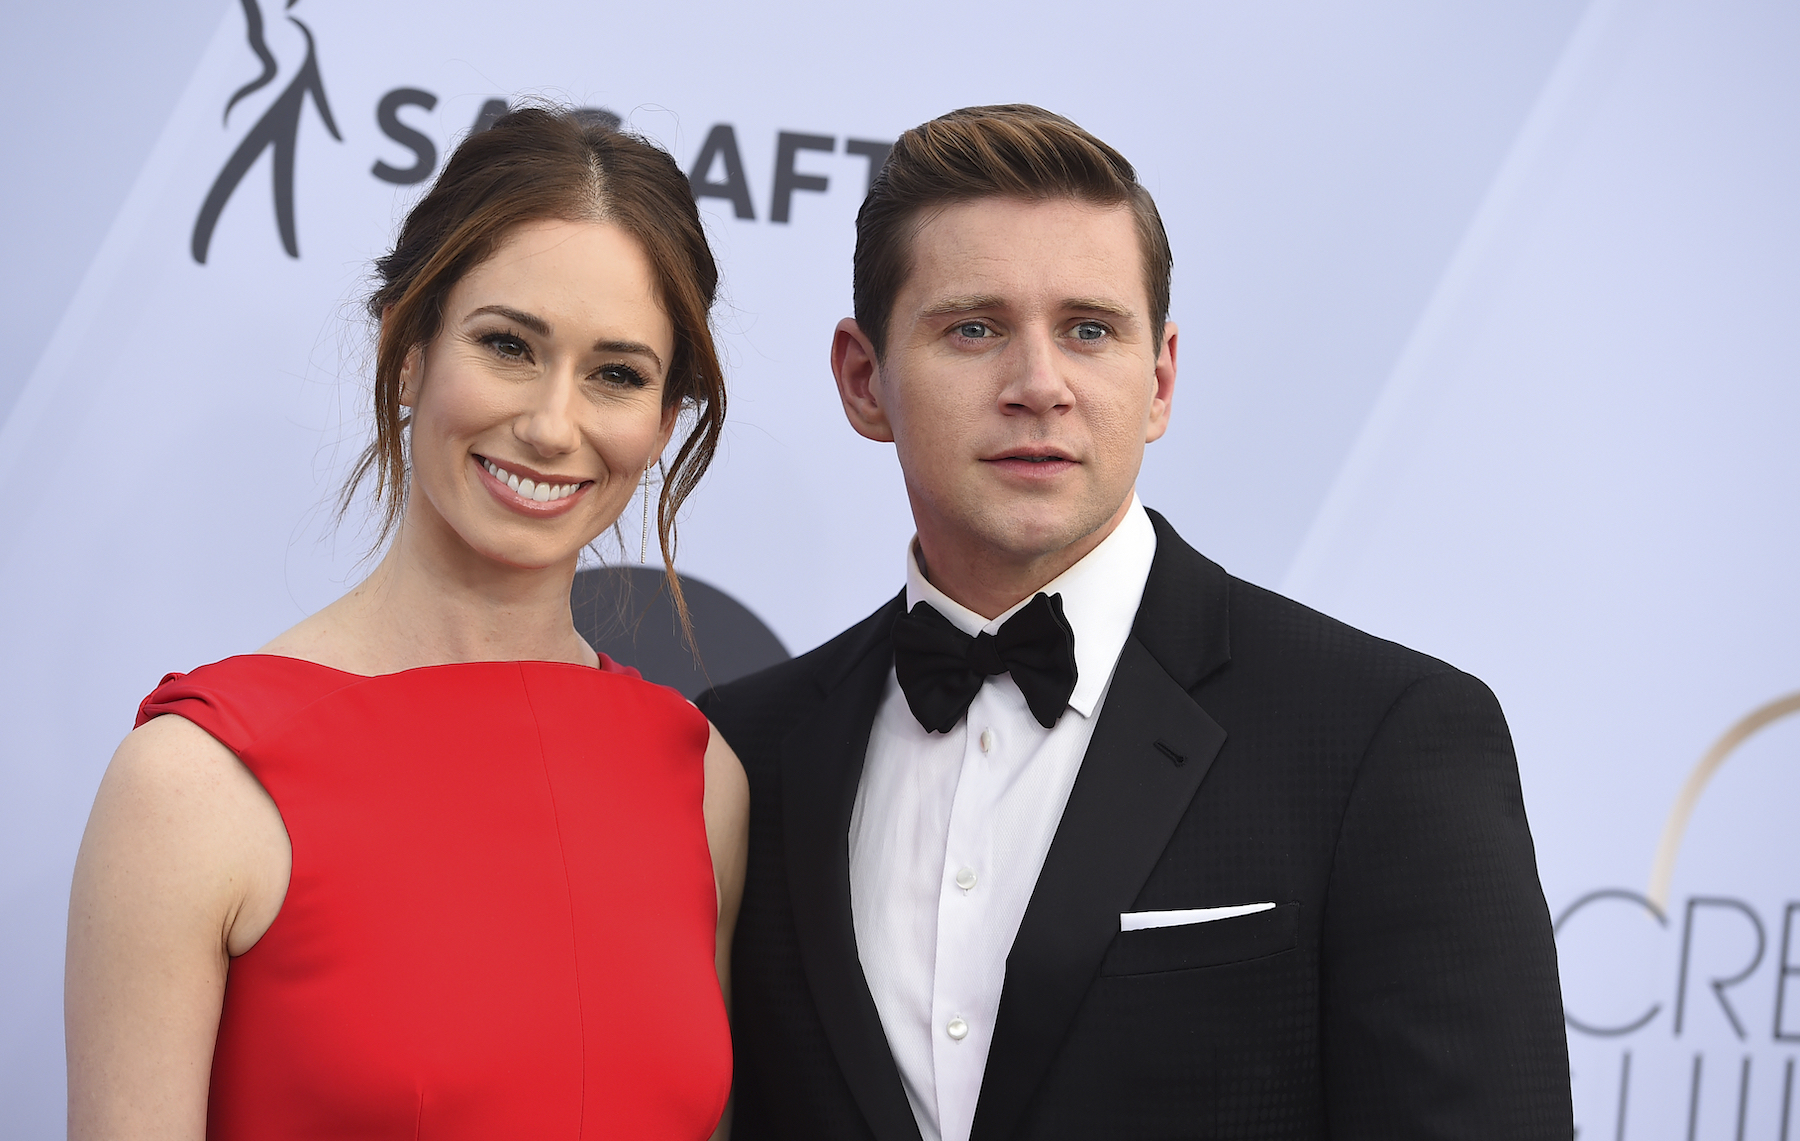 "<div class=""meta image-caption""><div class=""origin-logo origin-image ap""><span>AP</span></div><span class=""caption-text"">Jessica Blair Herman, left, and Allen Leech arrive at the 25th annual Screen Actors Guild Awards at the Shrine Auditorium & Expo Hall on Sunday, Jan. 27, 2019, in Los Angeles. (Jordan Strauss/Invision/AP)</span></div>"